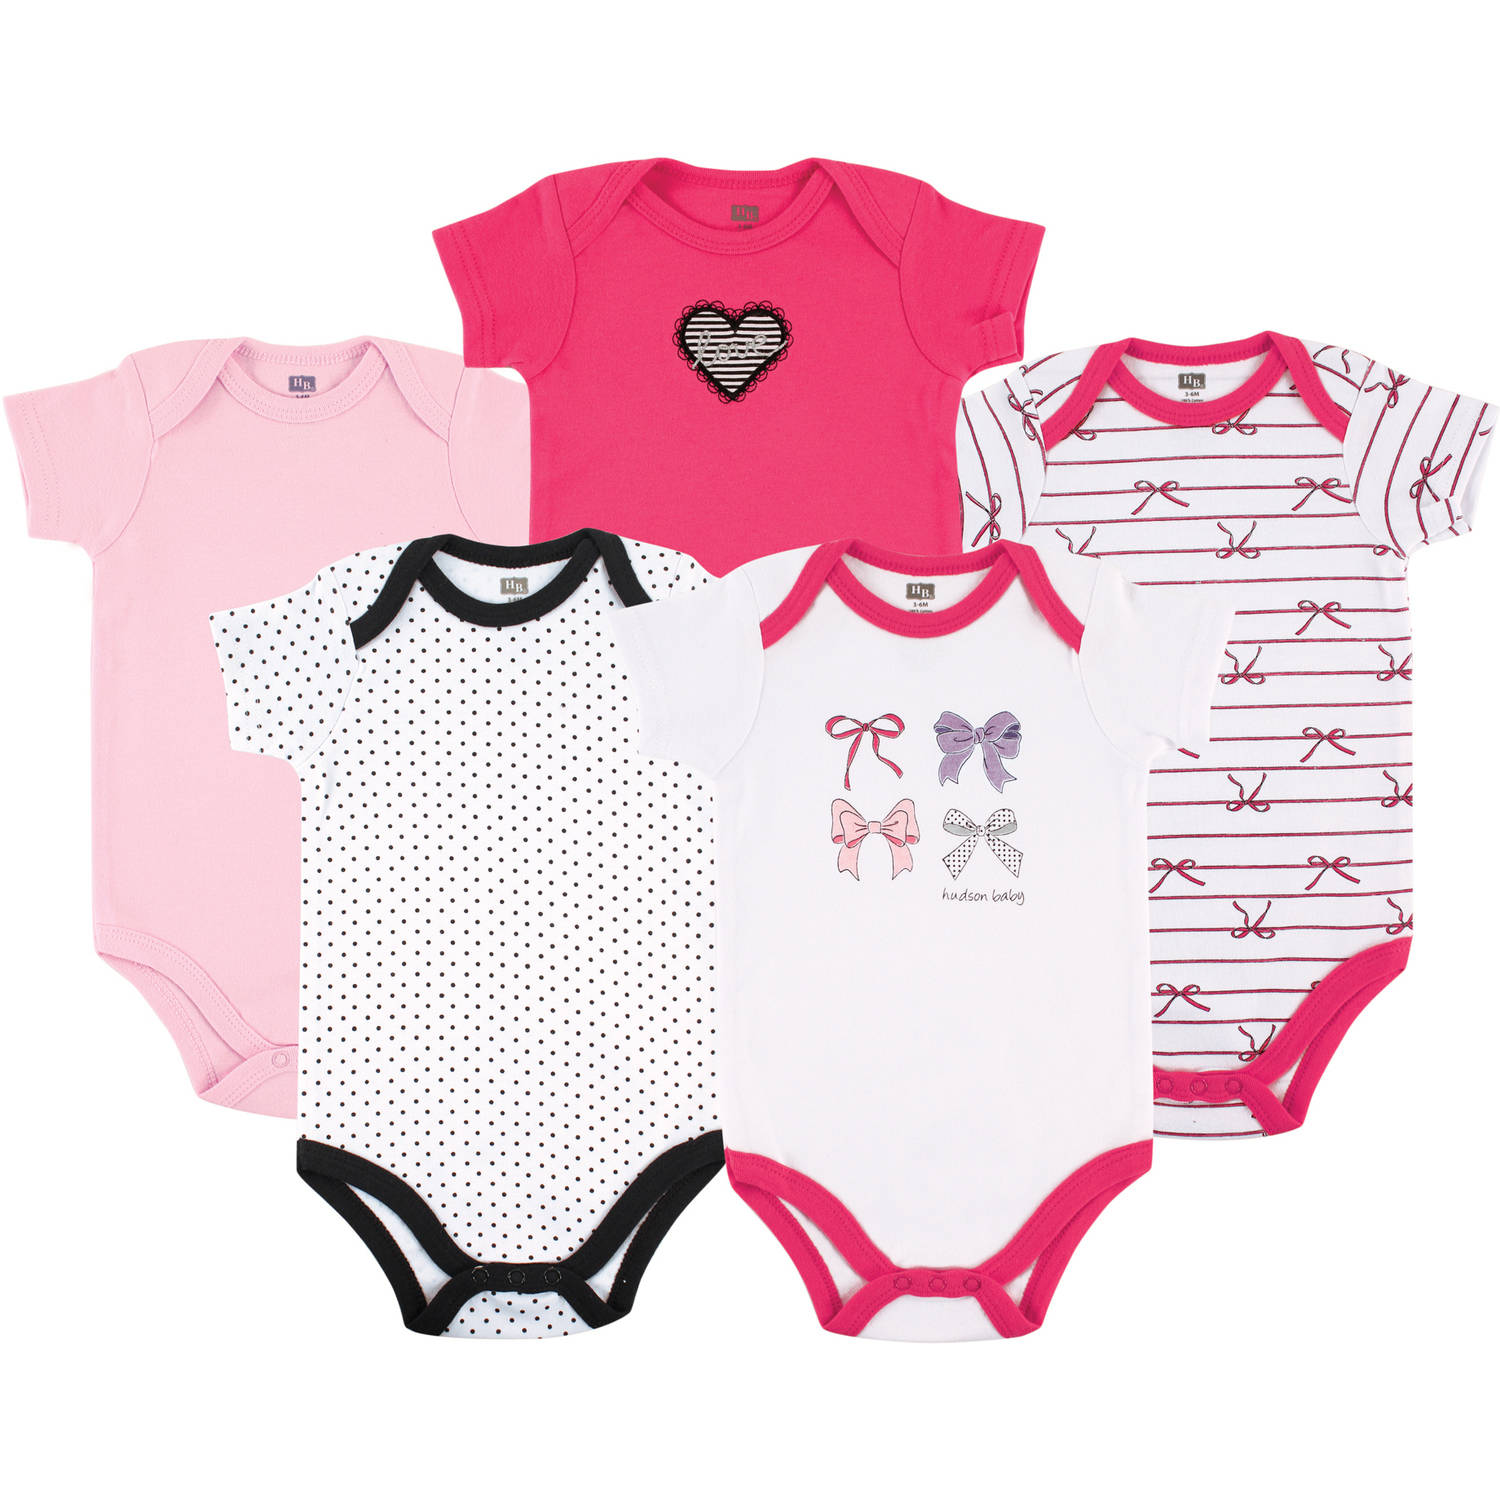 Hudson Baby Newborn Baby Girls Bodysuit 5-Pack - Bows